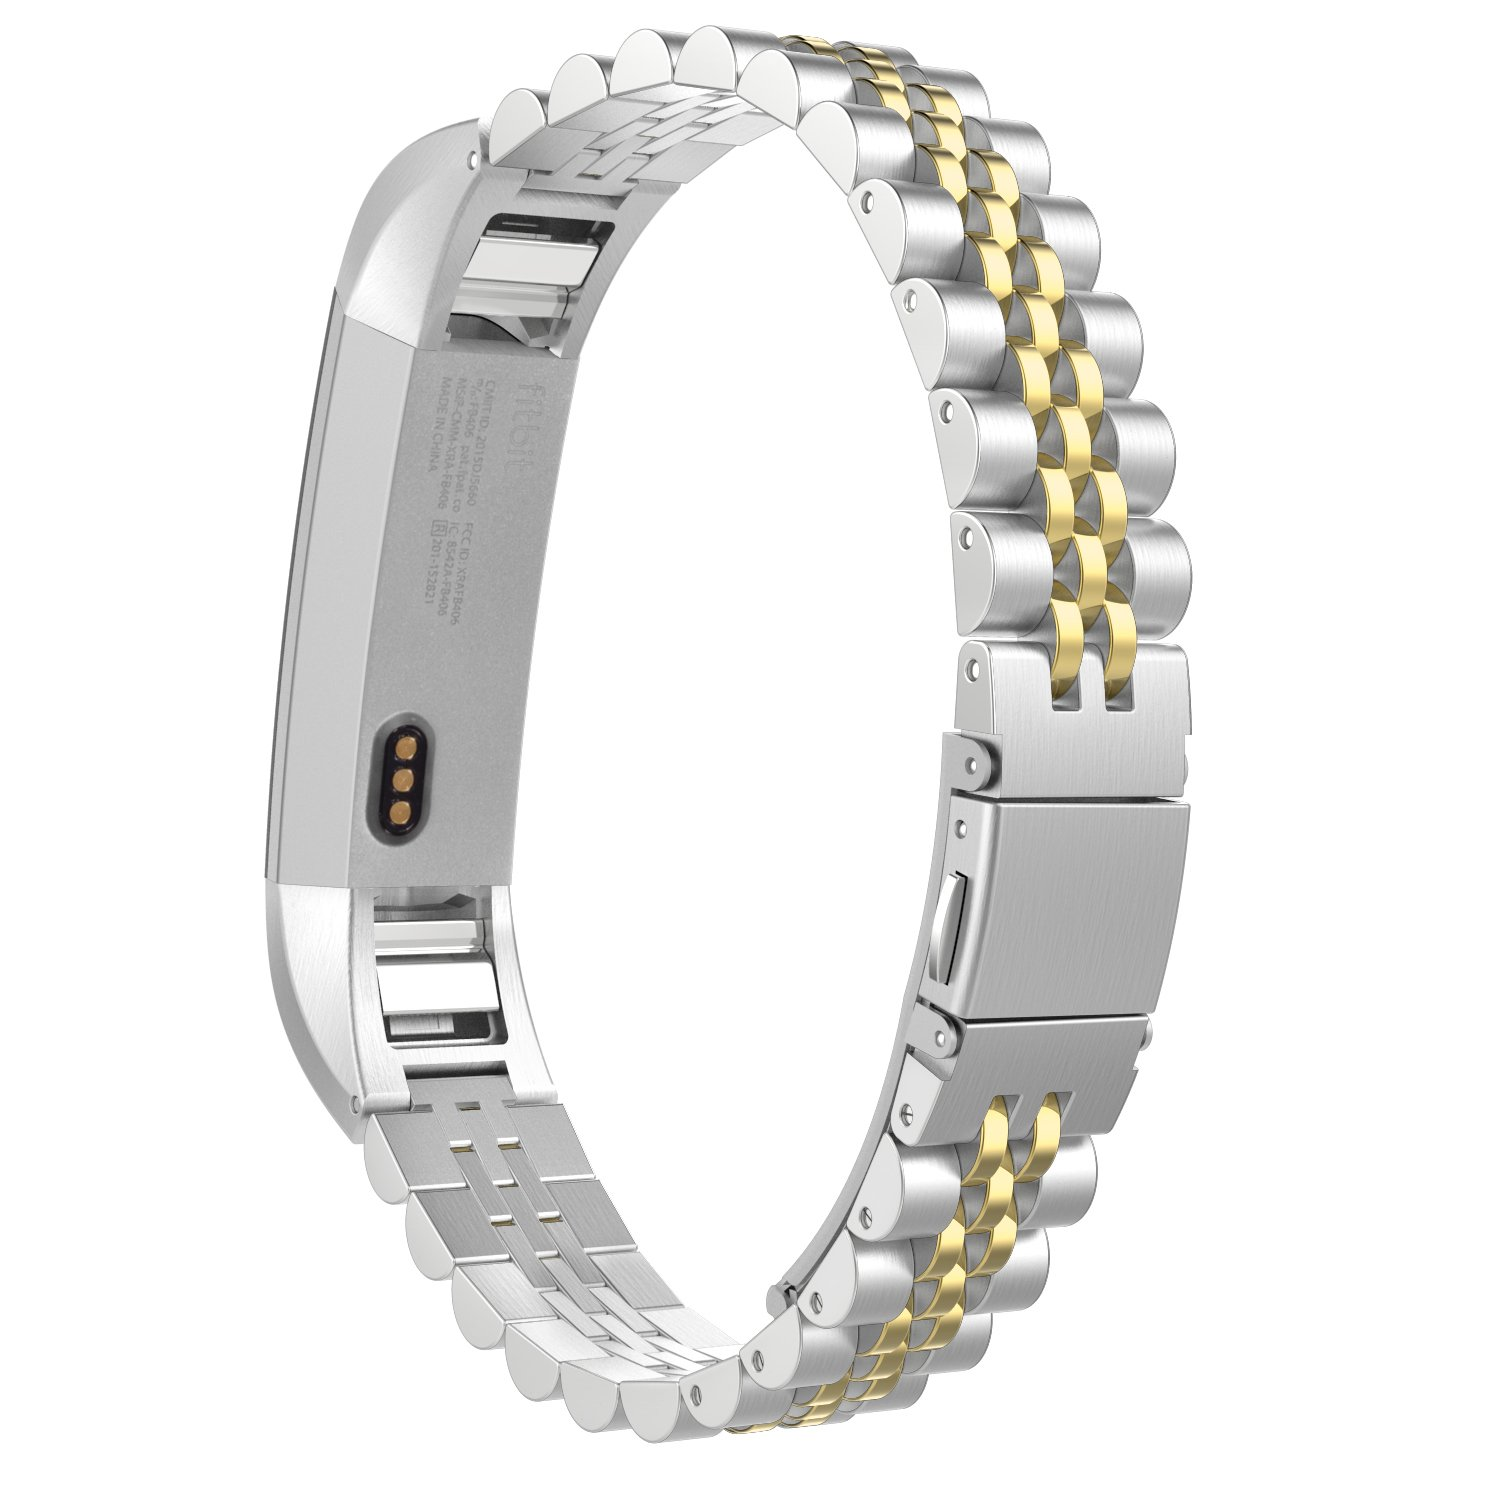 MoKo Fitbit Alta HR and Alta Band, Premium Solid Stainless Steel Metal Replacement Bracelet Strap Band with Connector for Fitbit Alta & Fitbit Alta HR, Silver & Gold